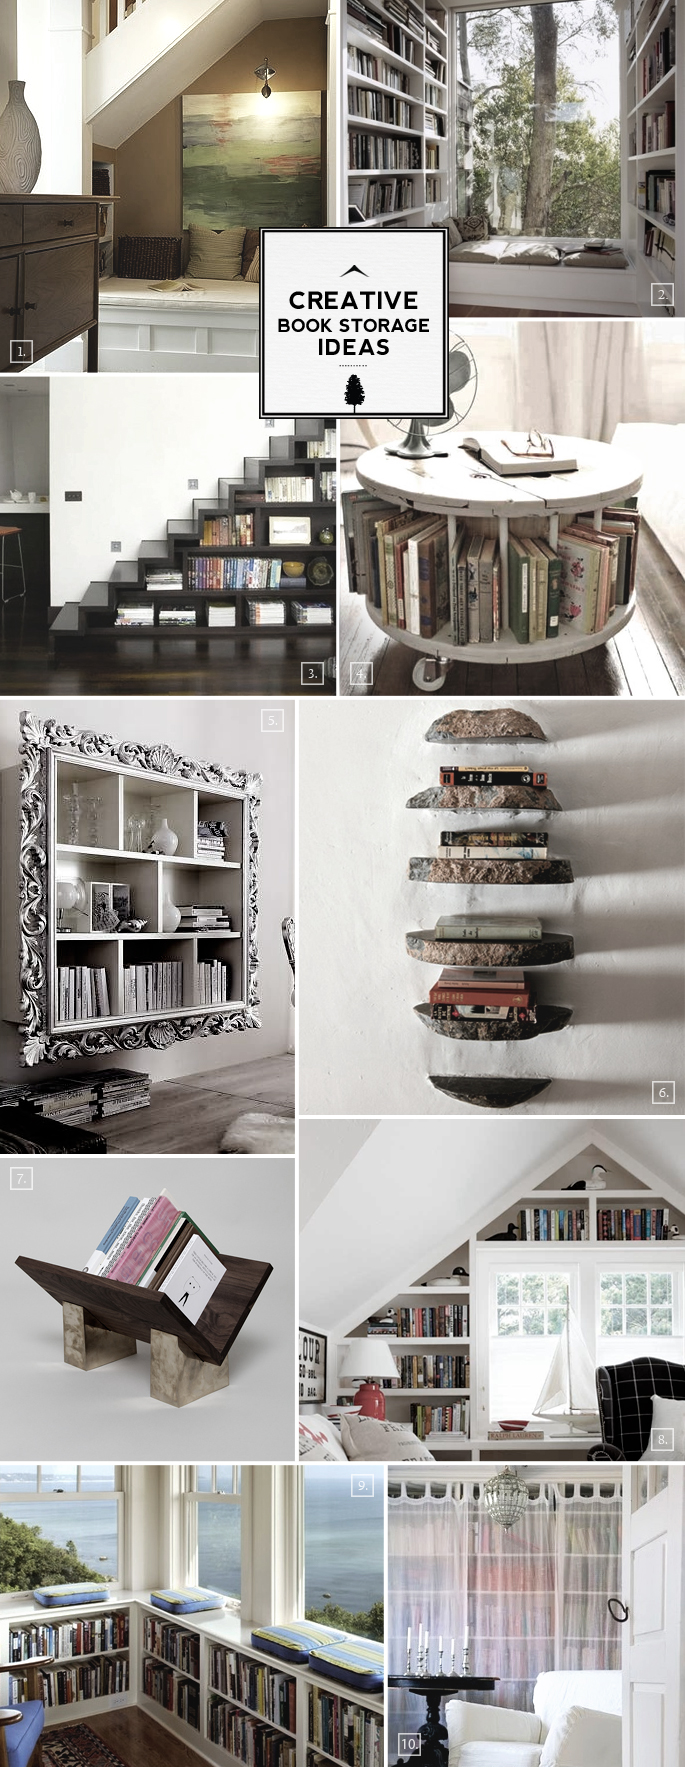 Creative Book Storage Ideas From Nooks To Staircases